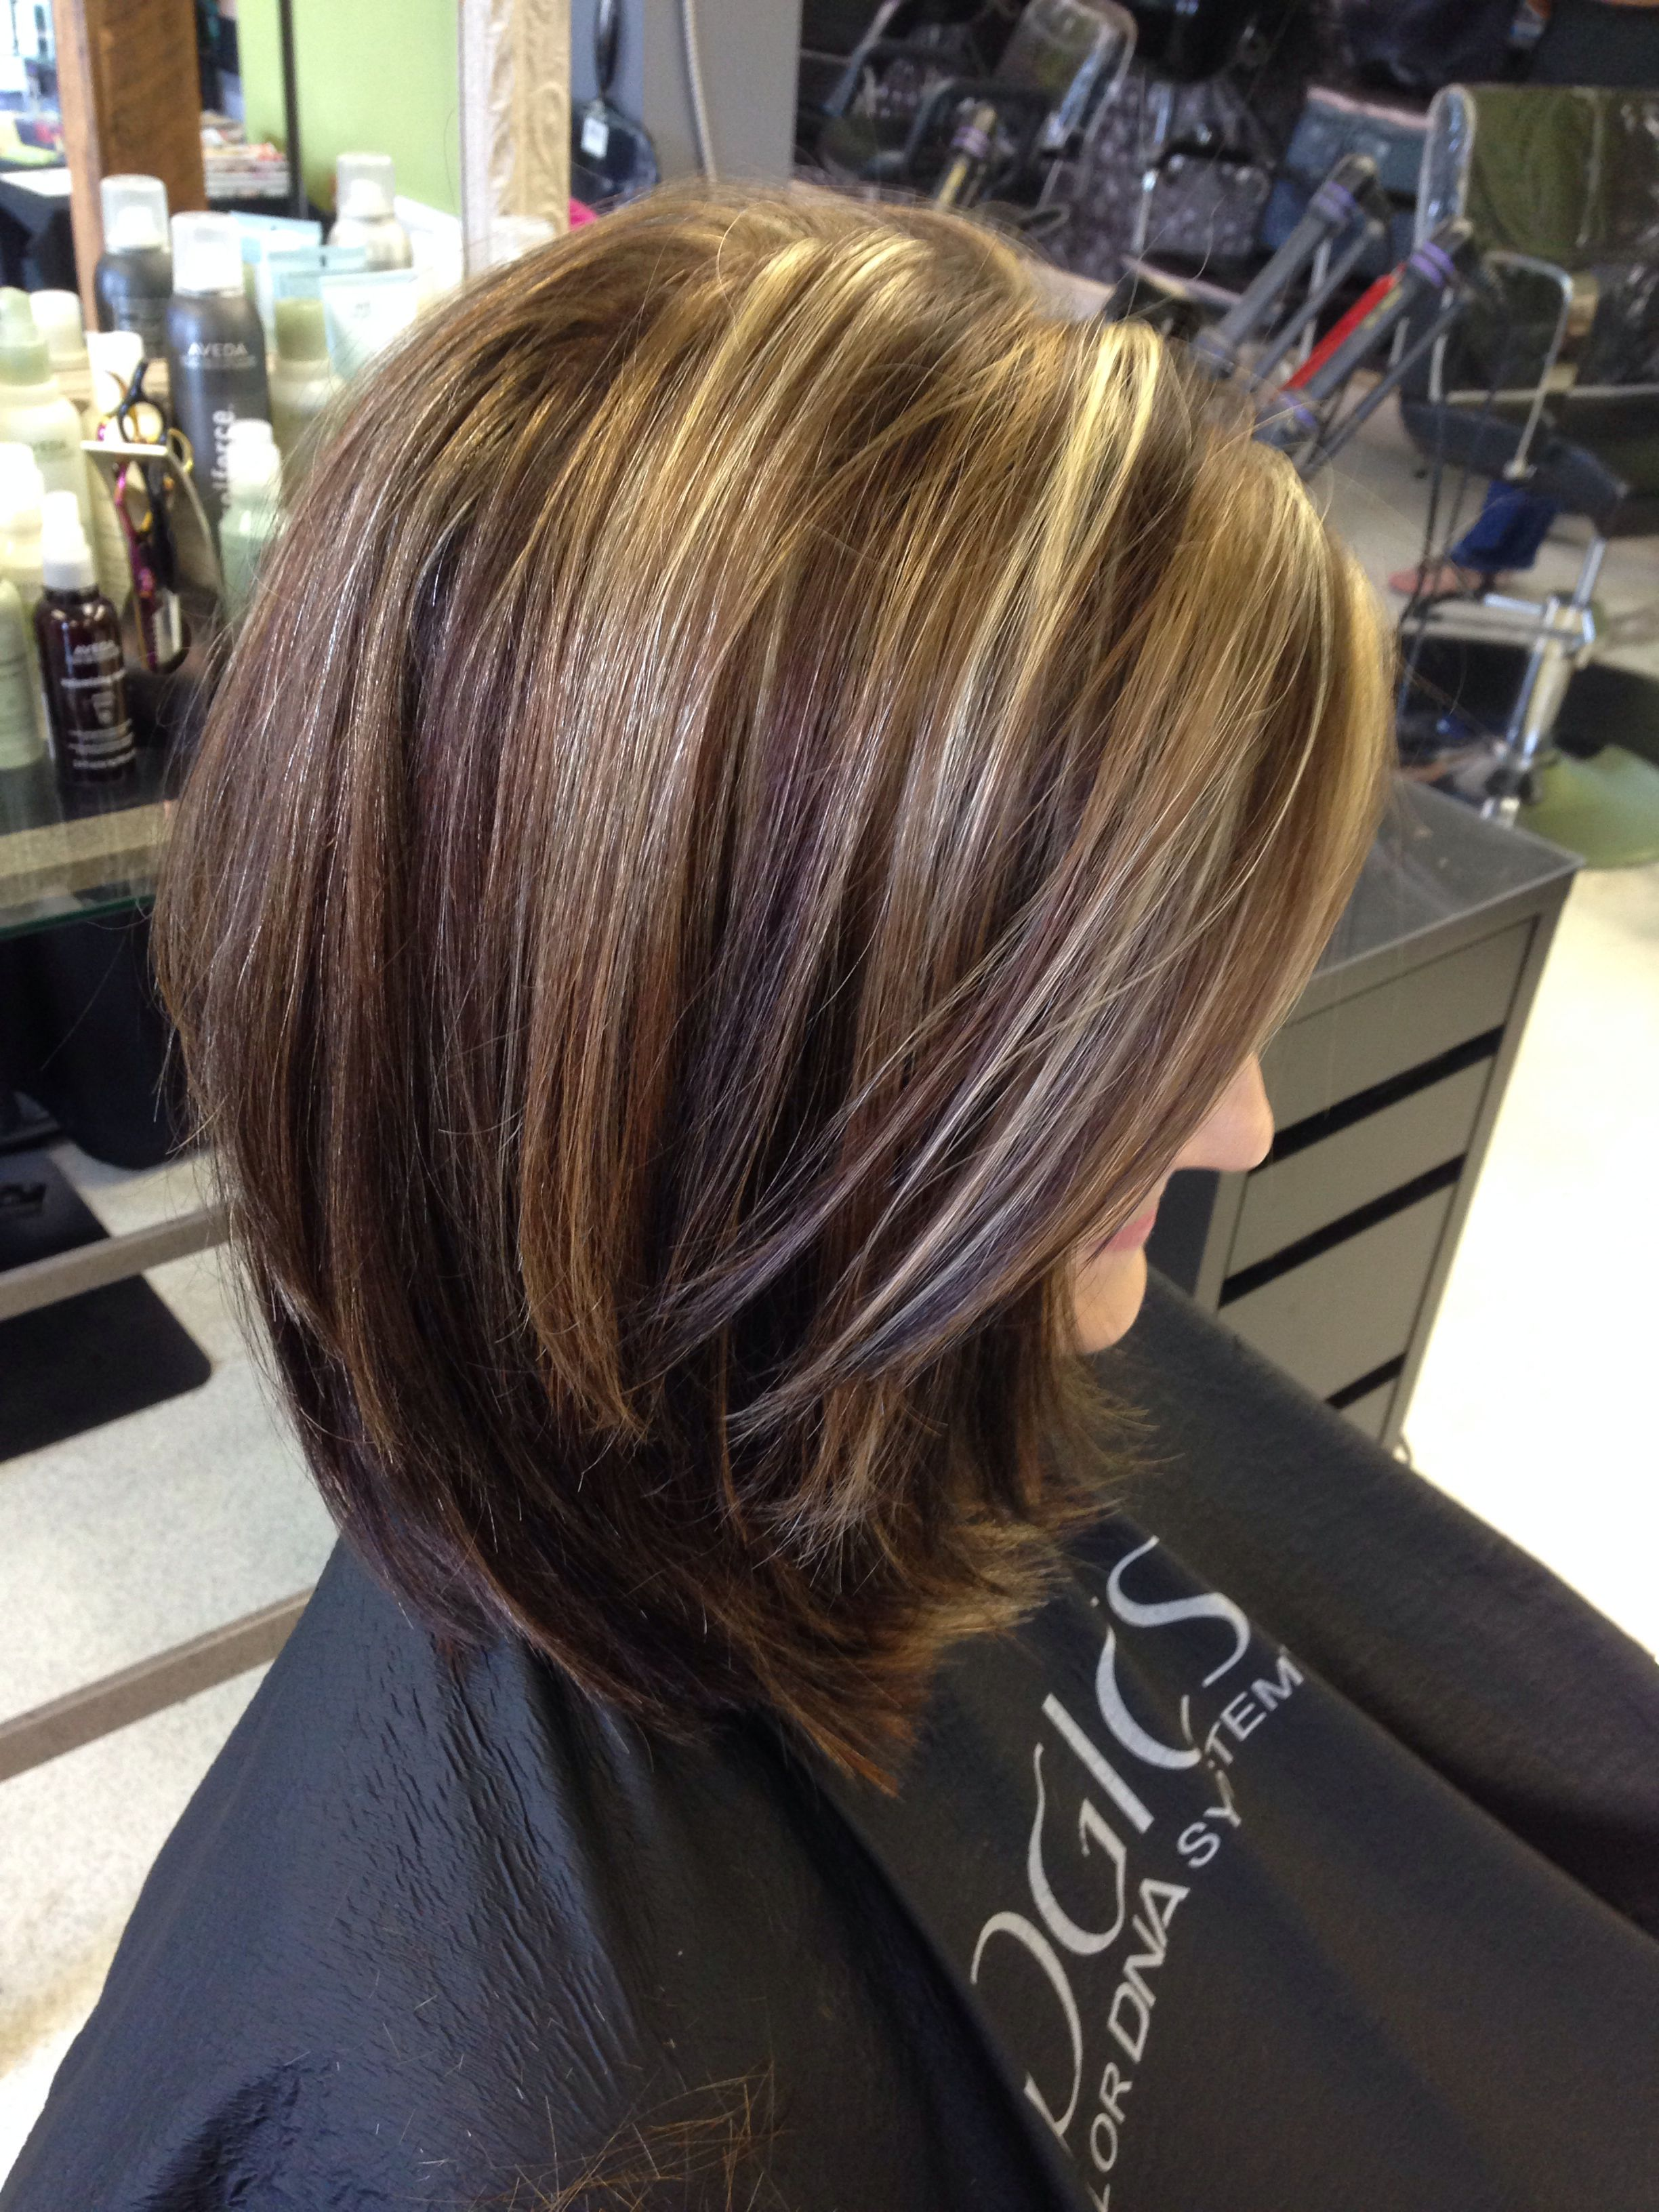 Short Hairstyles With Highlights And Lowlights Delectable Highlights And Lowlightstrisha Fringe Salon Lennon Mi  Short